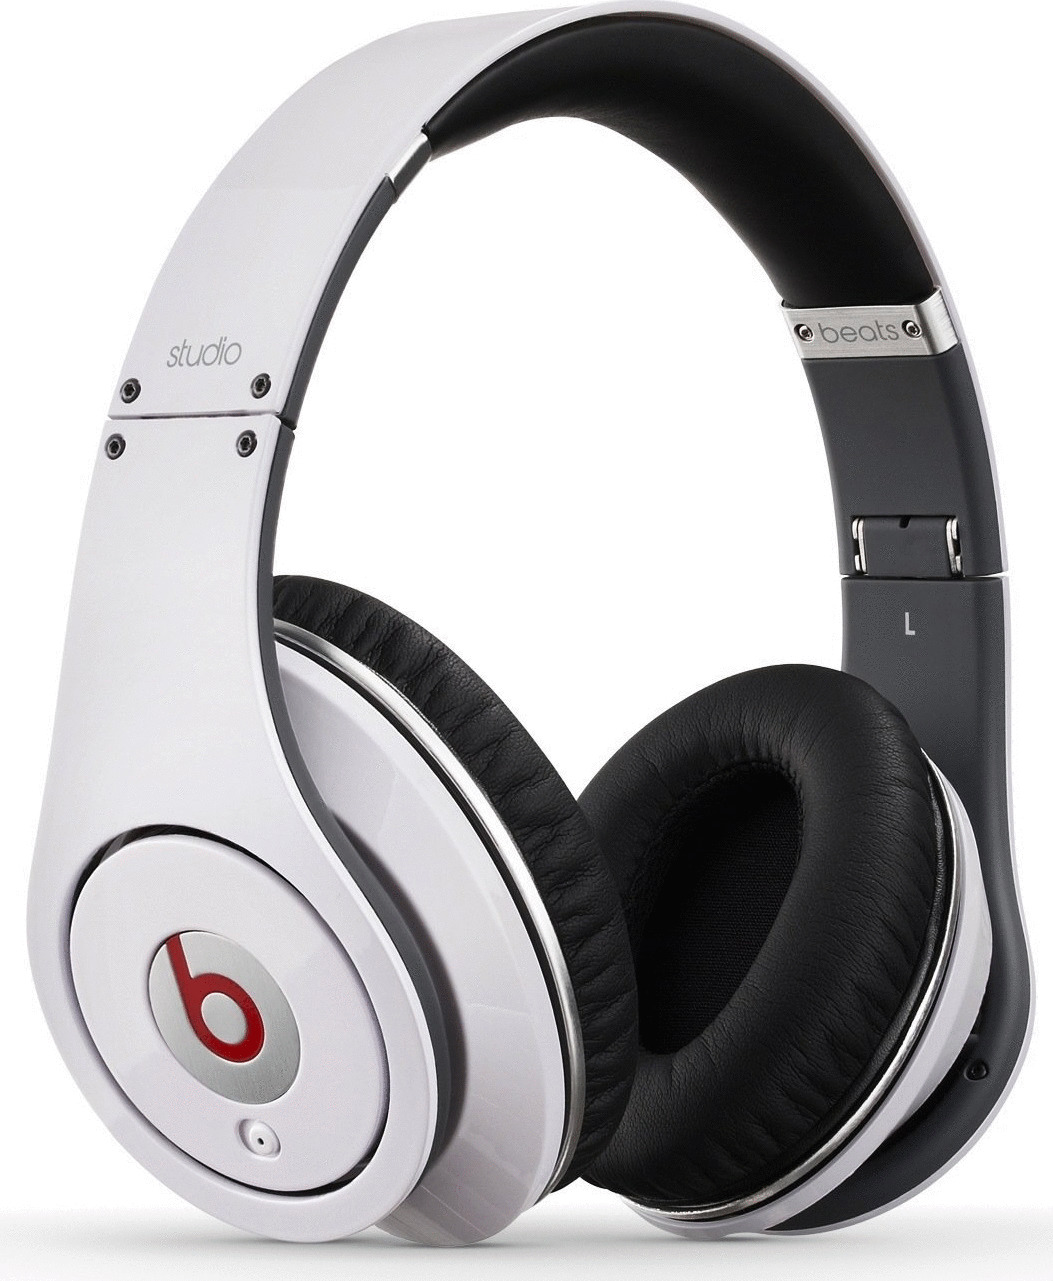 Beats by Dr. Dre Studio blanc